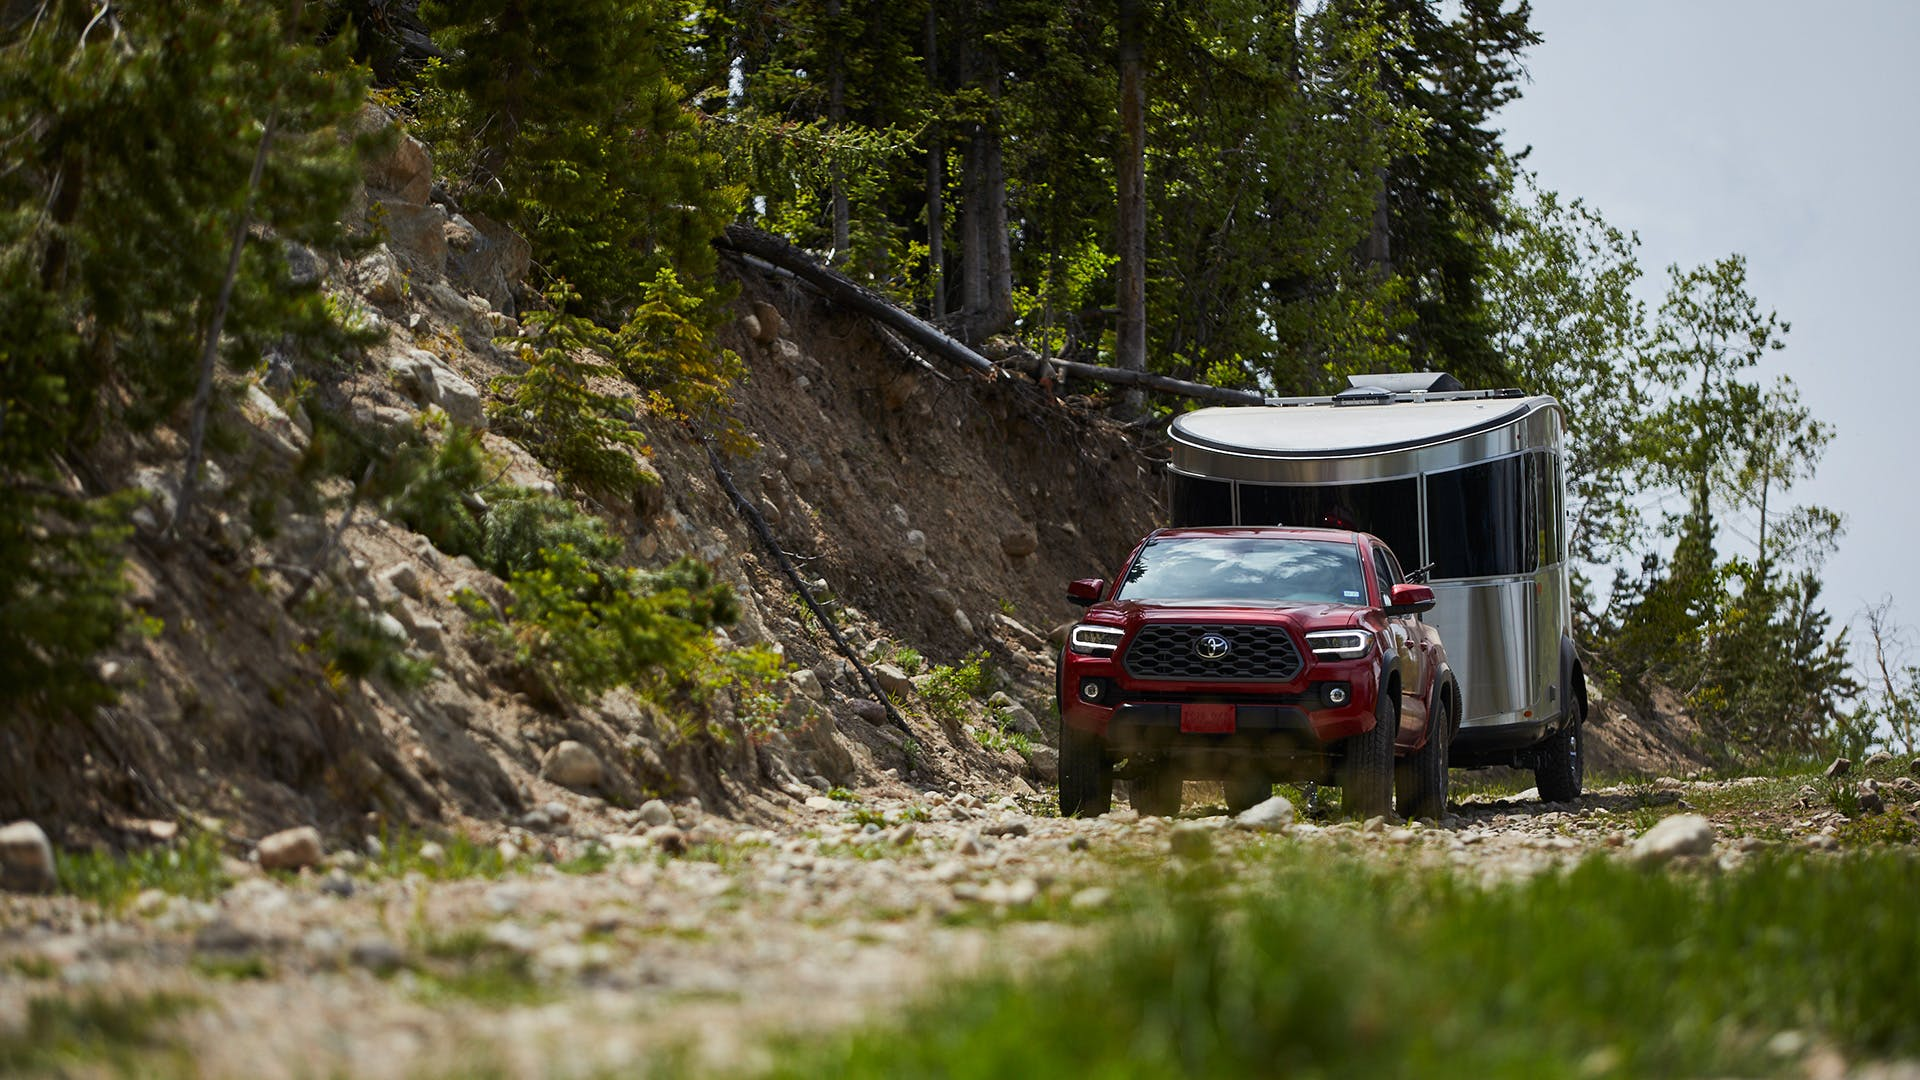 Airstream-Basecamp-20X-Offroad-Capabilities-Feature-2